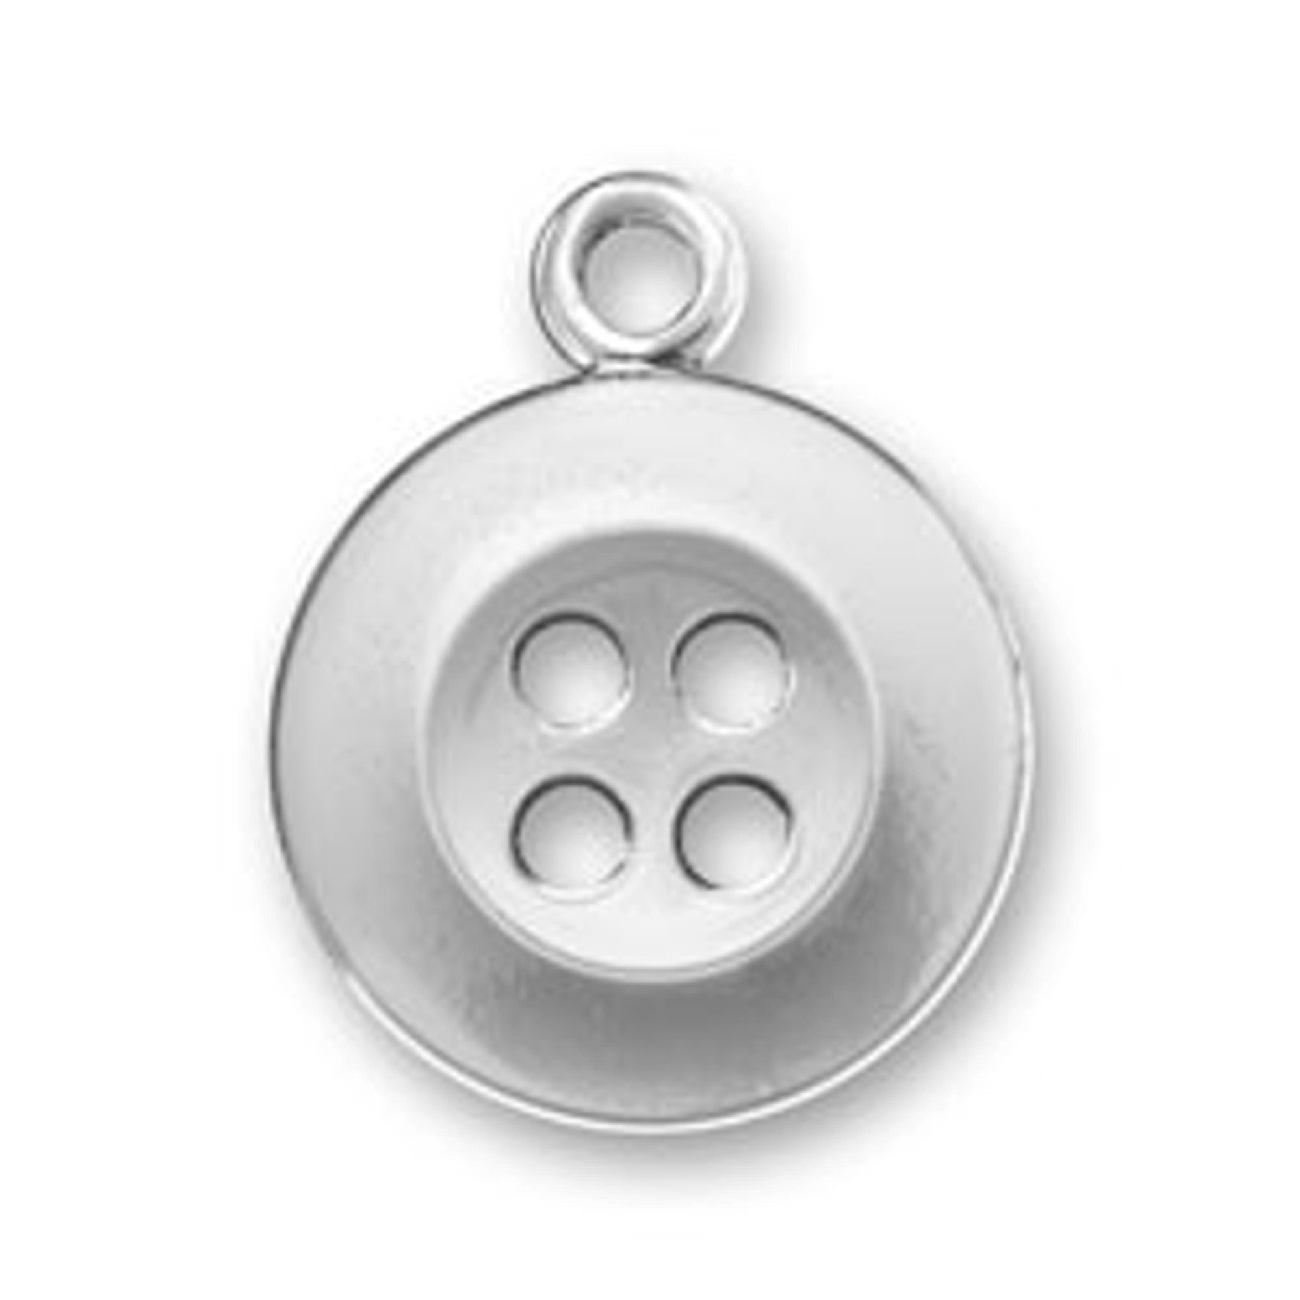 Sterling Silver 7 4.5mm Charm Bracelet With Attached 3D Plain Round Button Charm